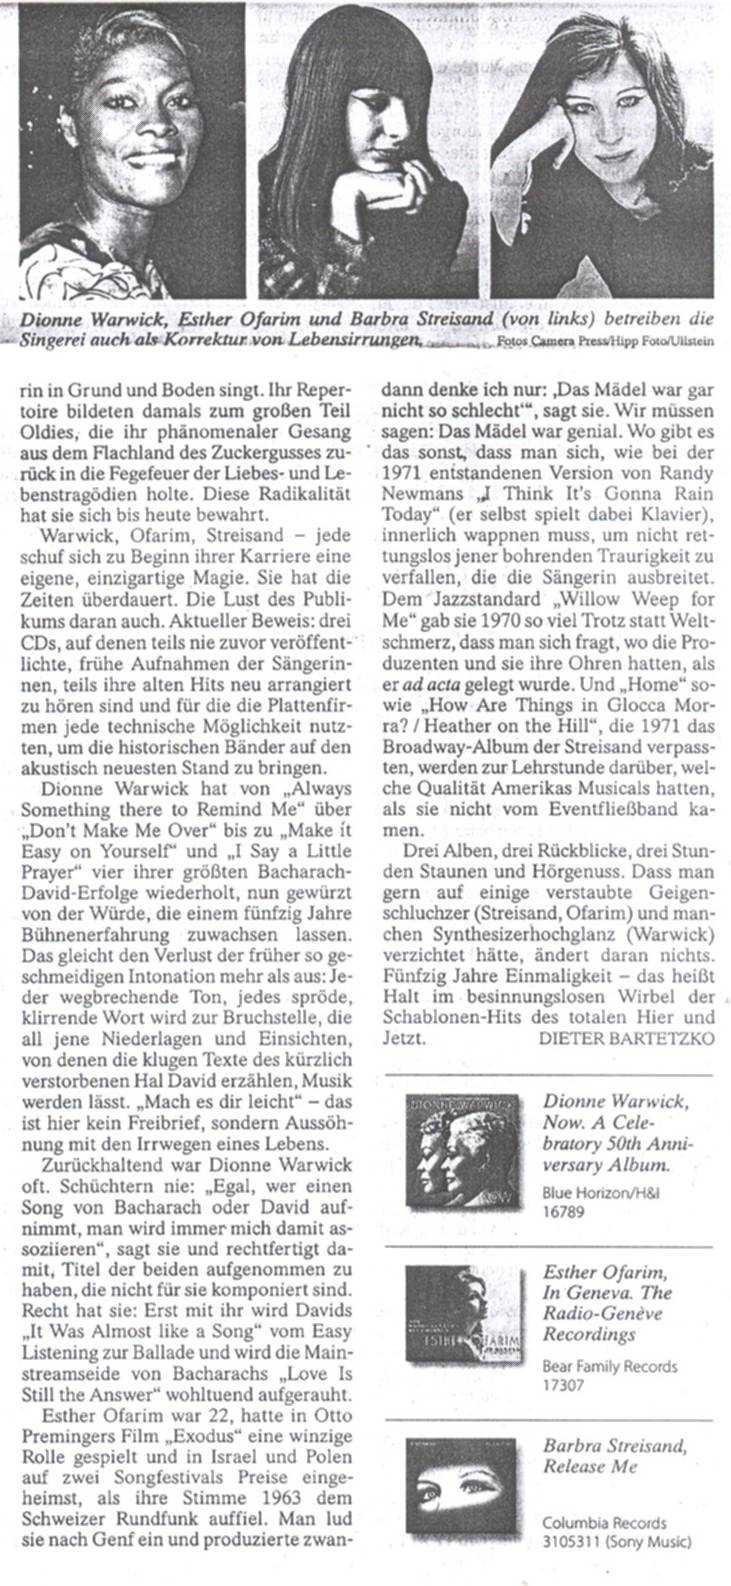 Taken from FAZ, November 1, 2012.